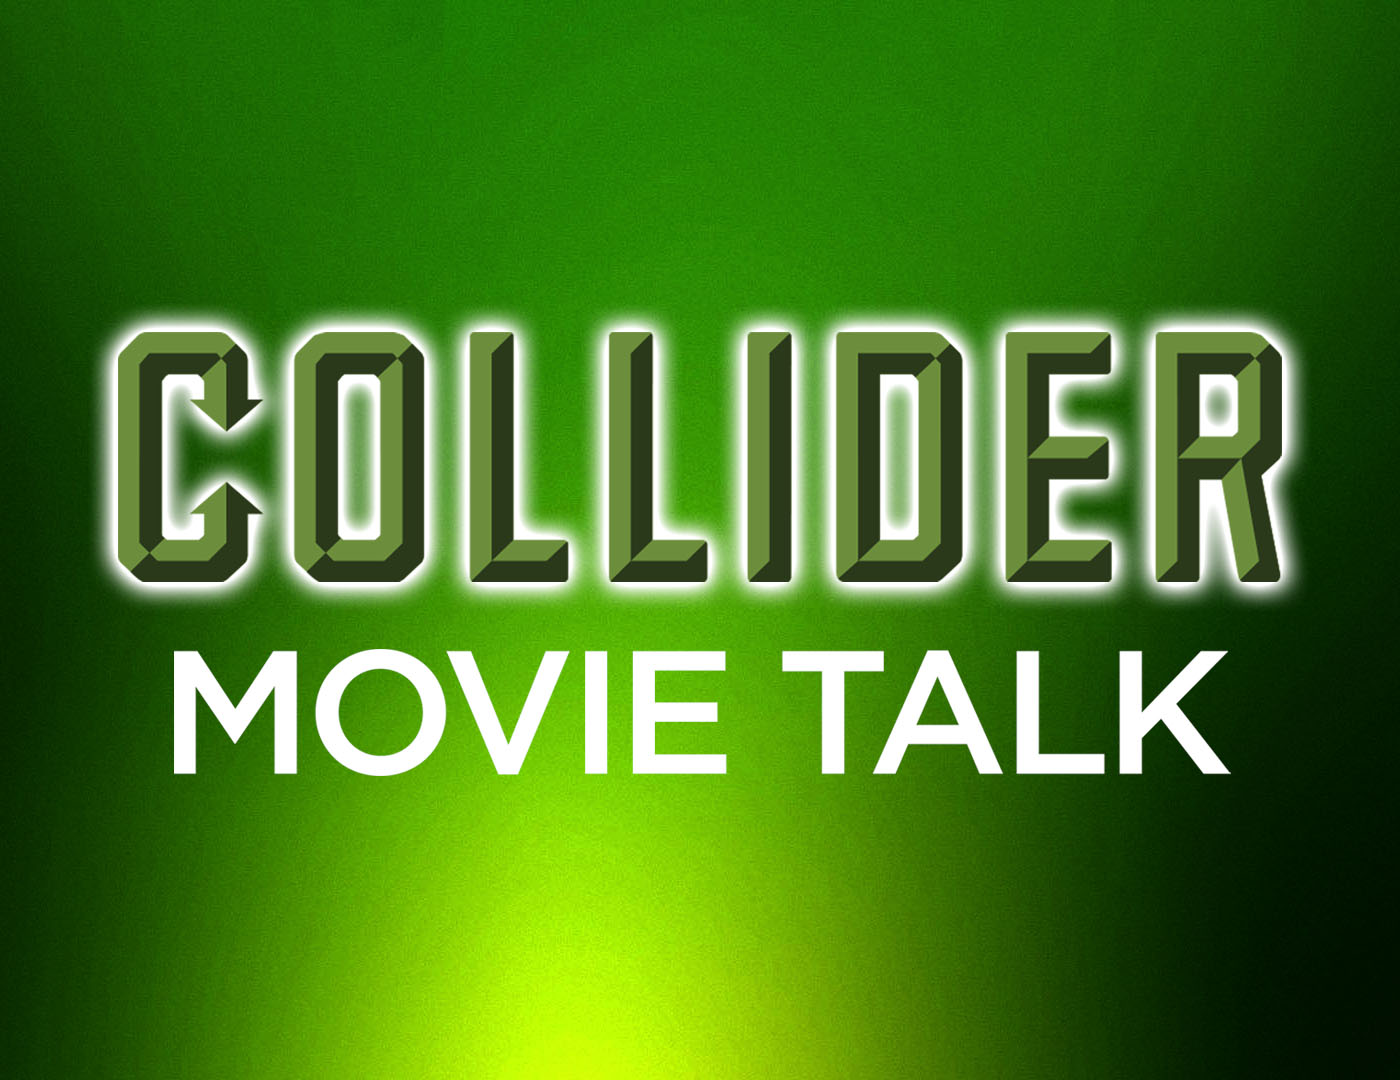 Collider Movie Talk - Captain America: Civil War Plays Nice With Star Wars